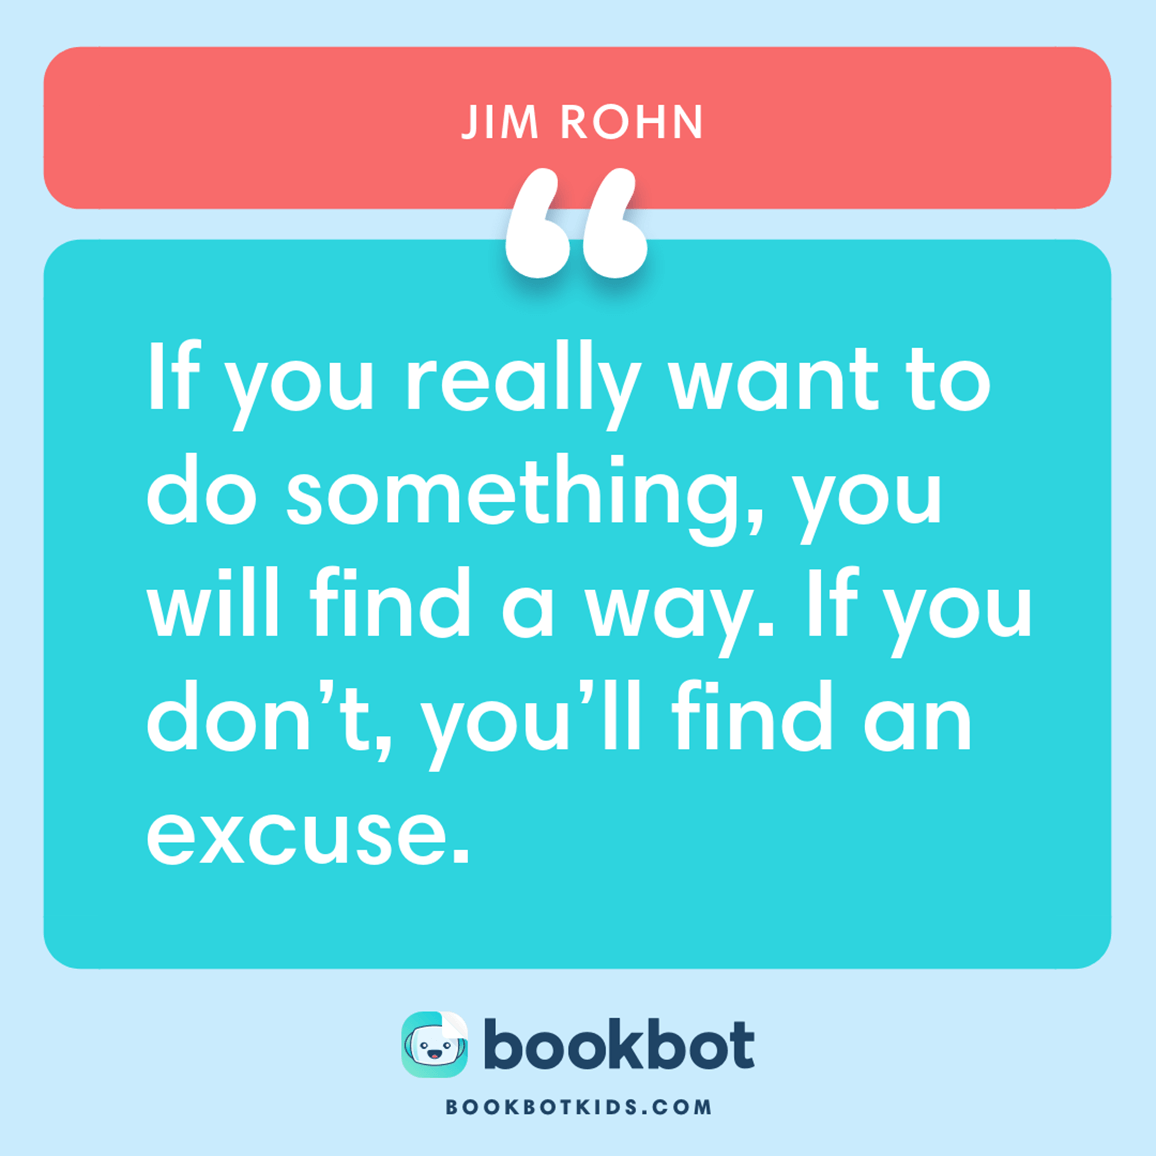 If you really want to do something, you will find a way. If you don't, you'll find an excuse. – Jim Rohn